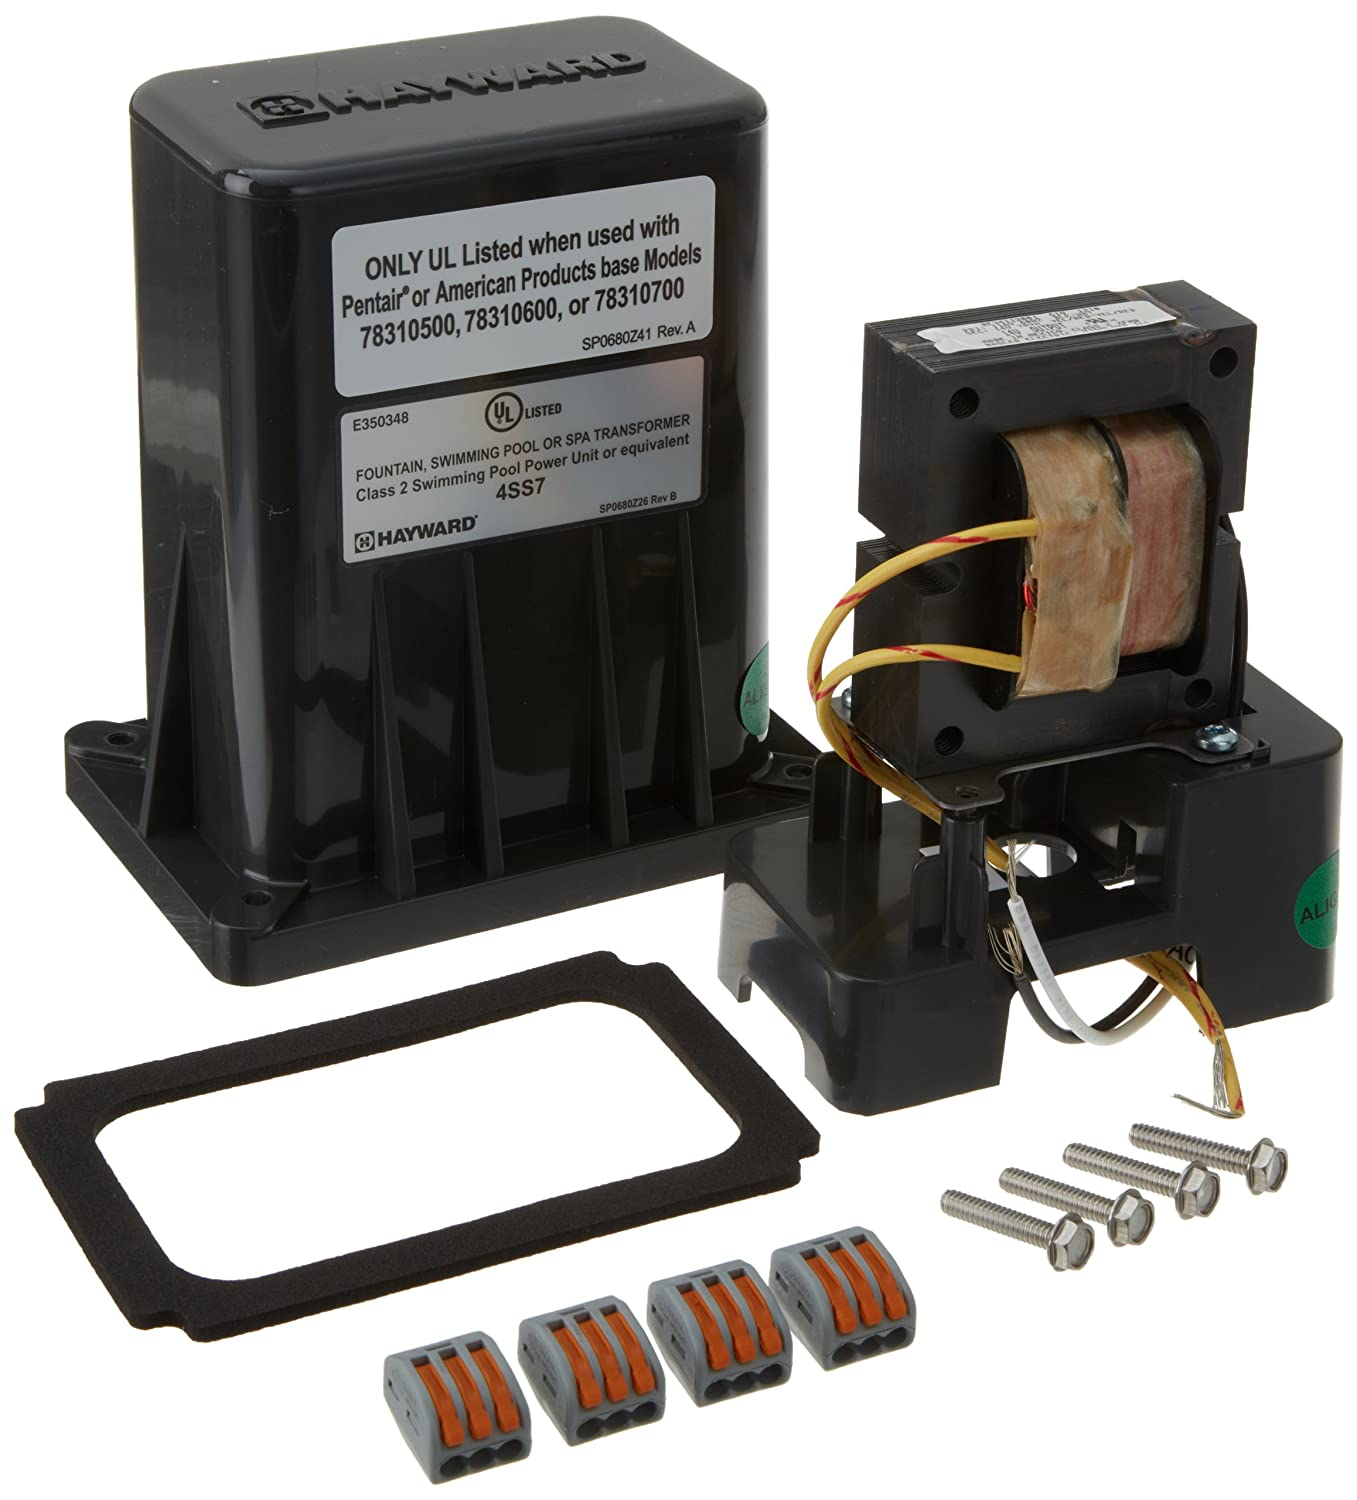 Amazon hayward lrbuy11p65 universal colorlogic xfmr amazon hayward lrbuy11p65 universal colorlogic xfmr transformer converter replacement kit for pentair 70 watt junction box swimming pool and spa sciox Gallery